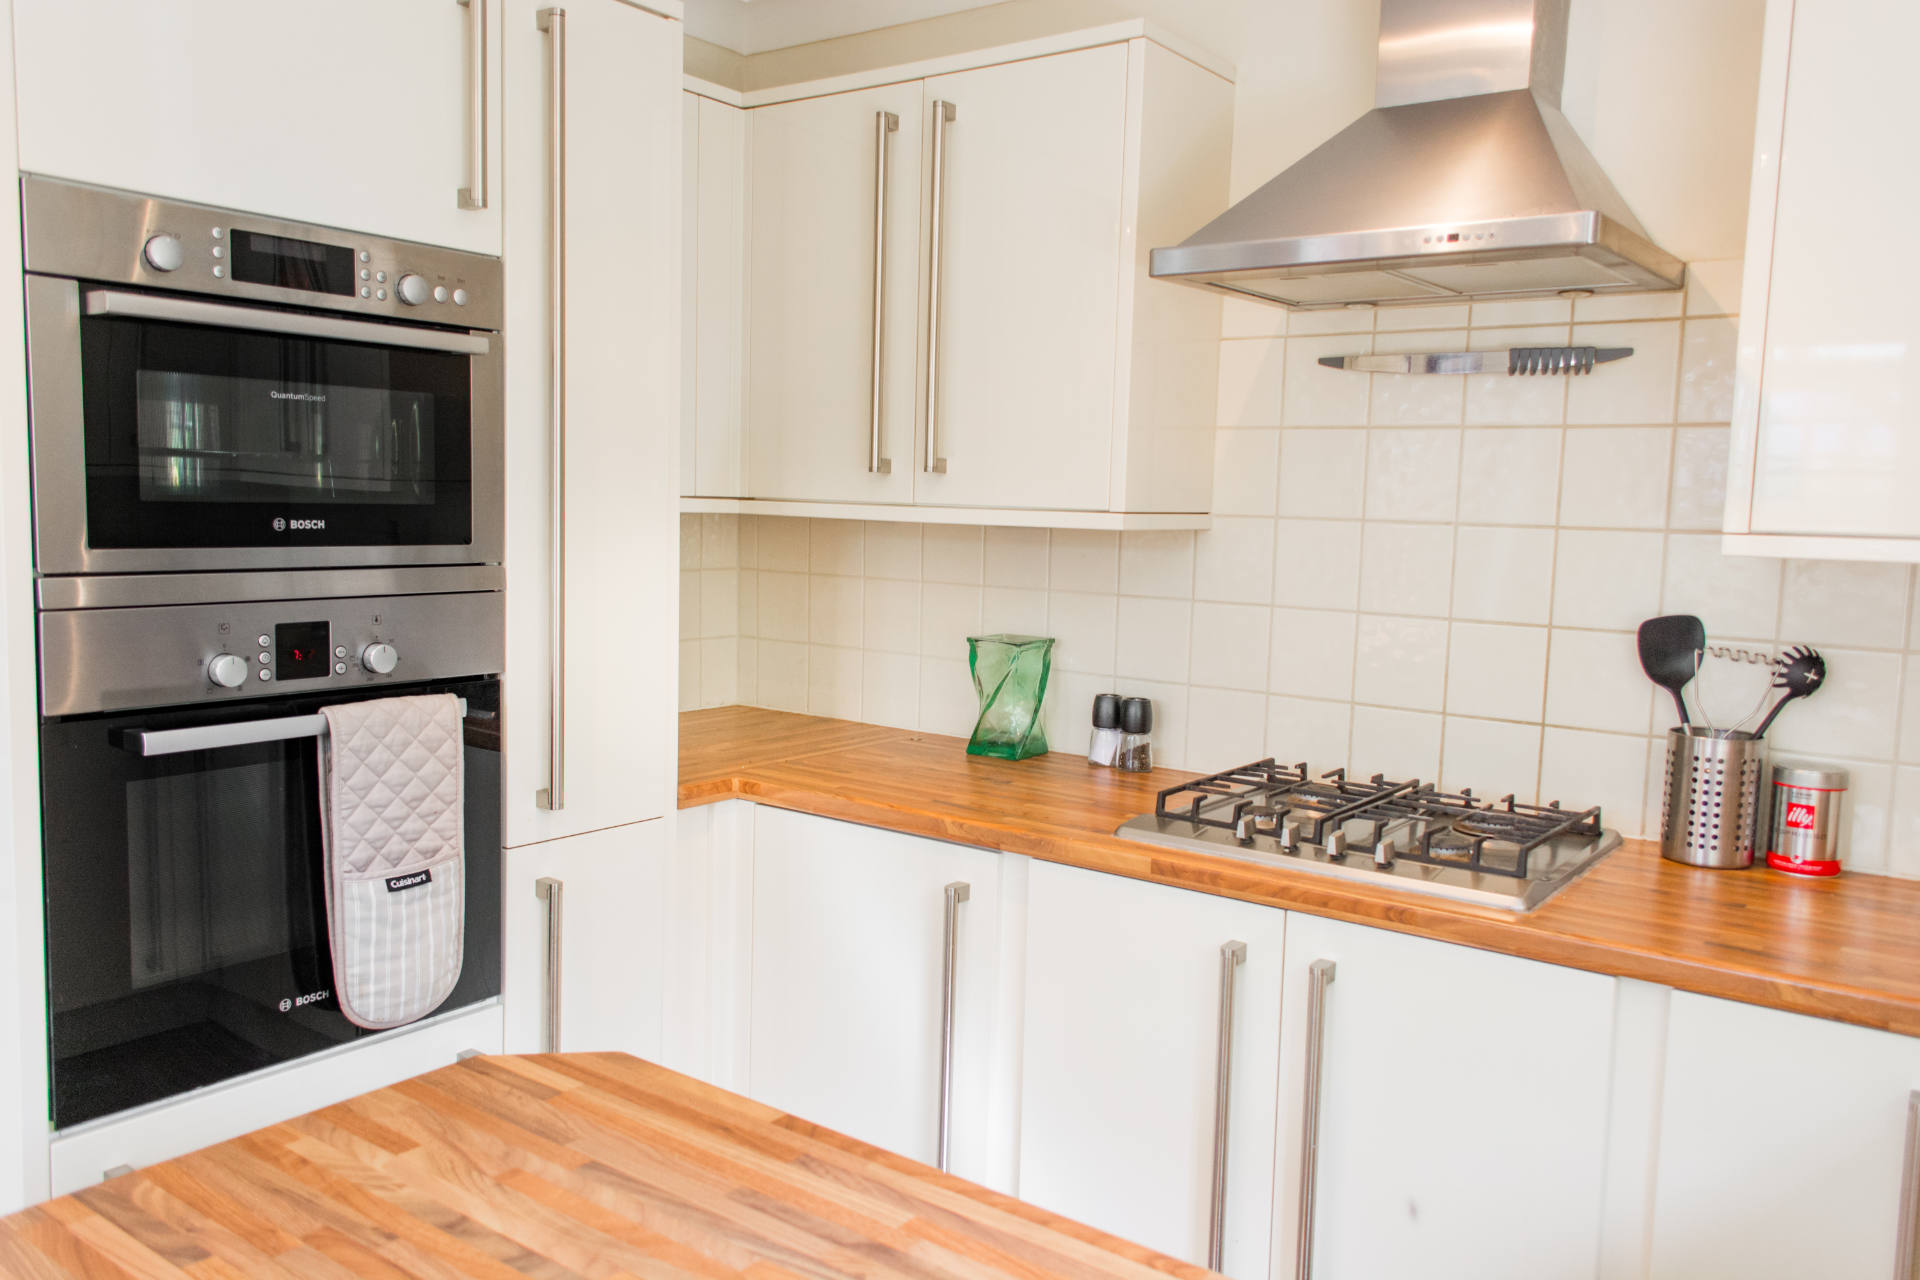 Kitchen oven, hobs and extractor fan.